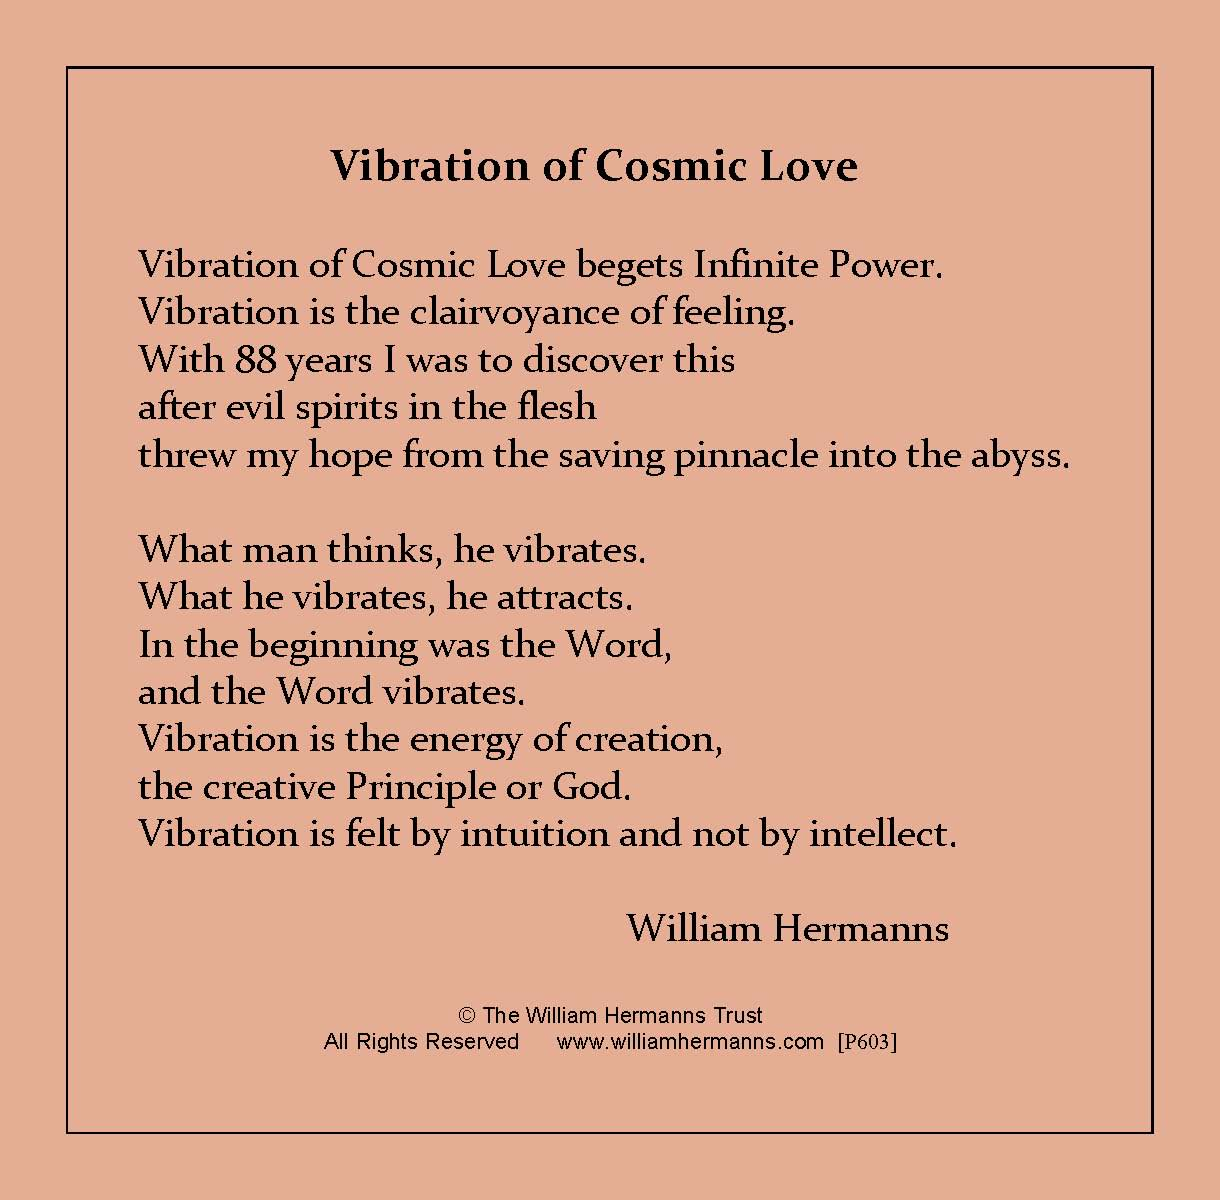 Vibrations of Cosmic Love by William Hermanns